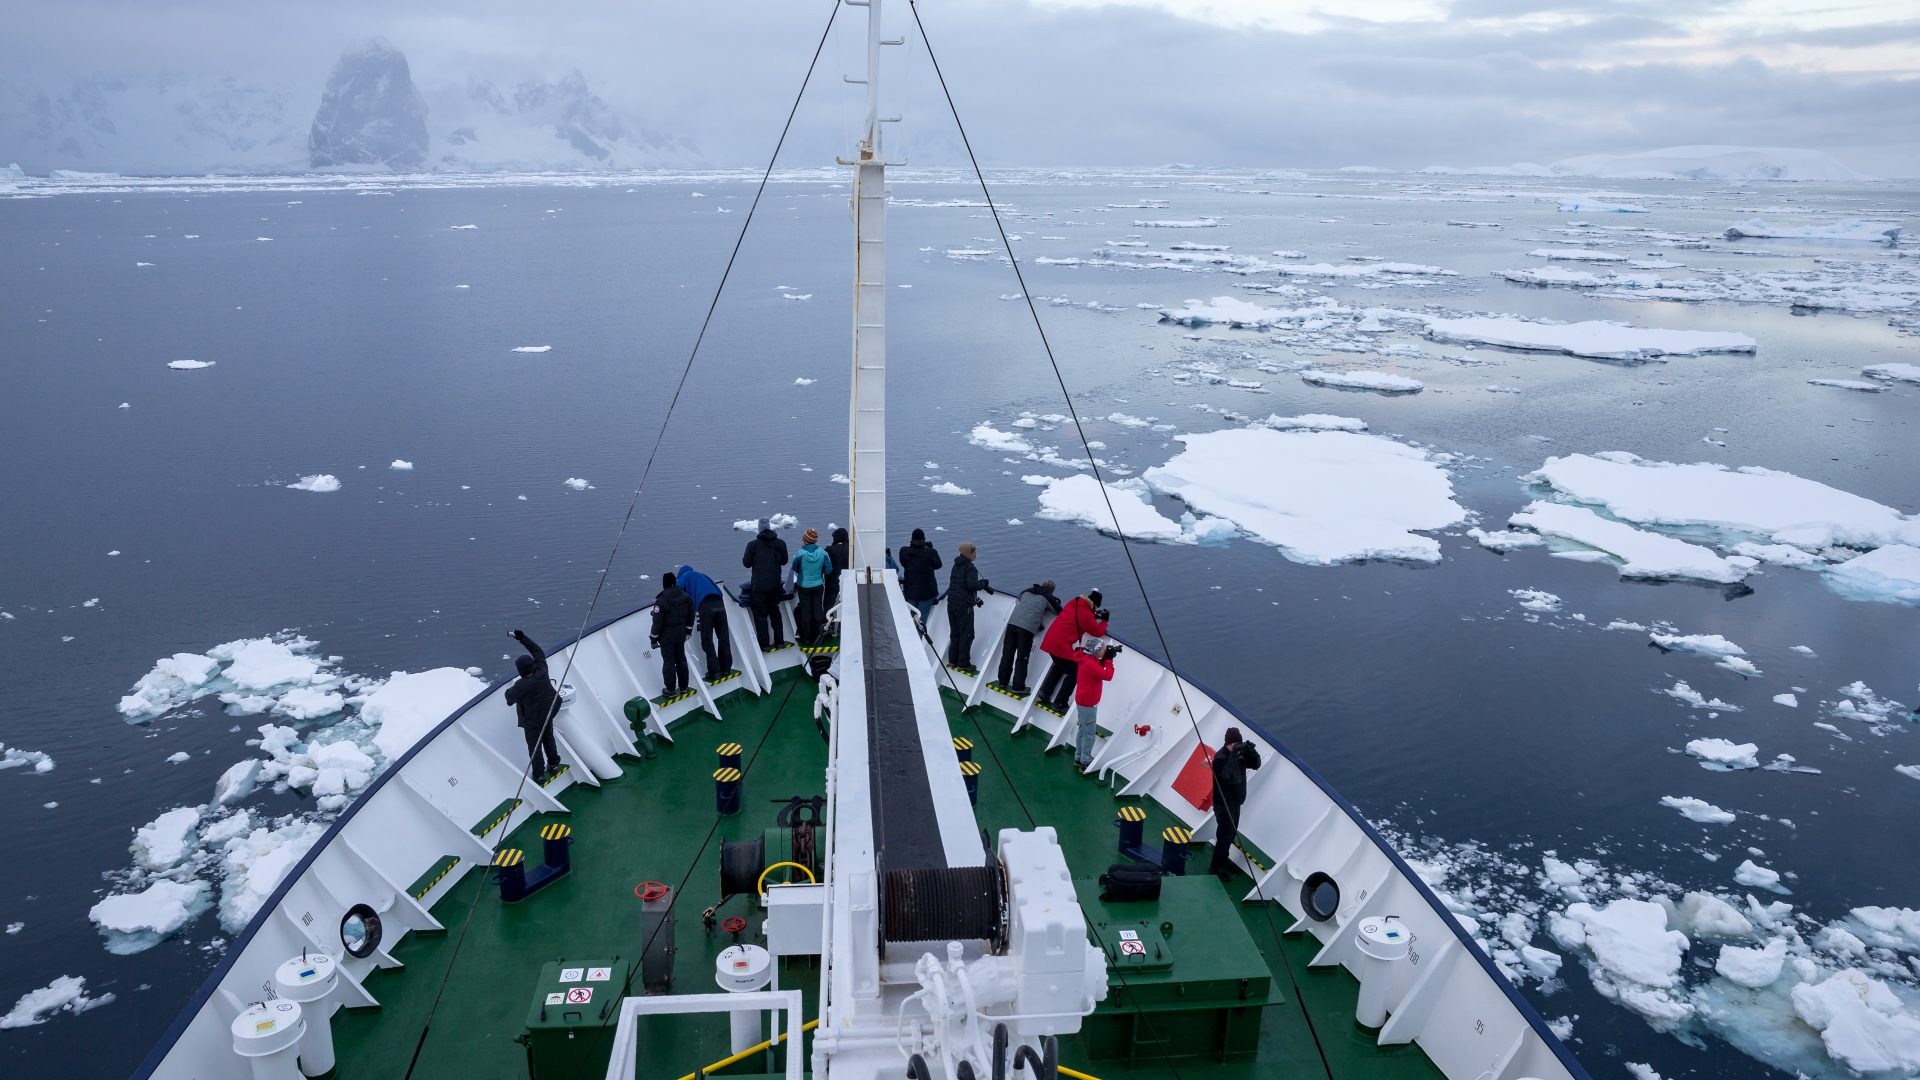 Passengers can be seen from above, looking out over the deck of their ship as it moves through the water in Antarctica.